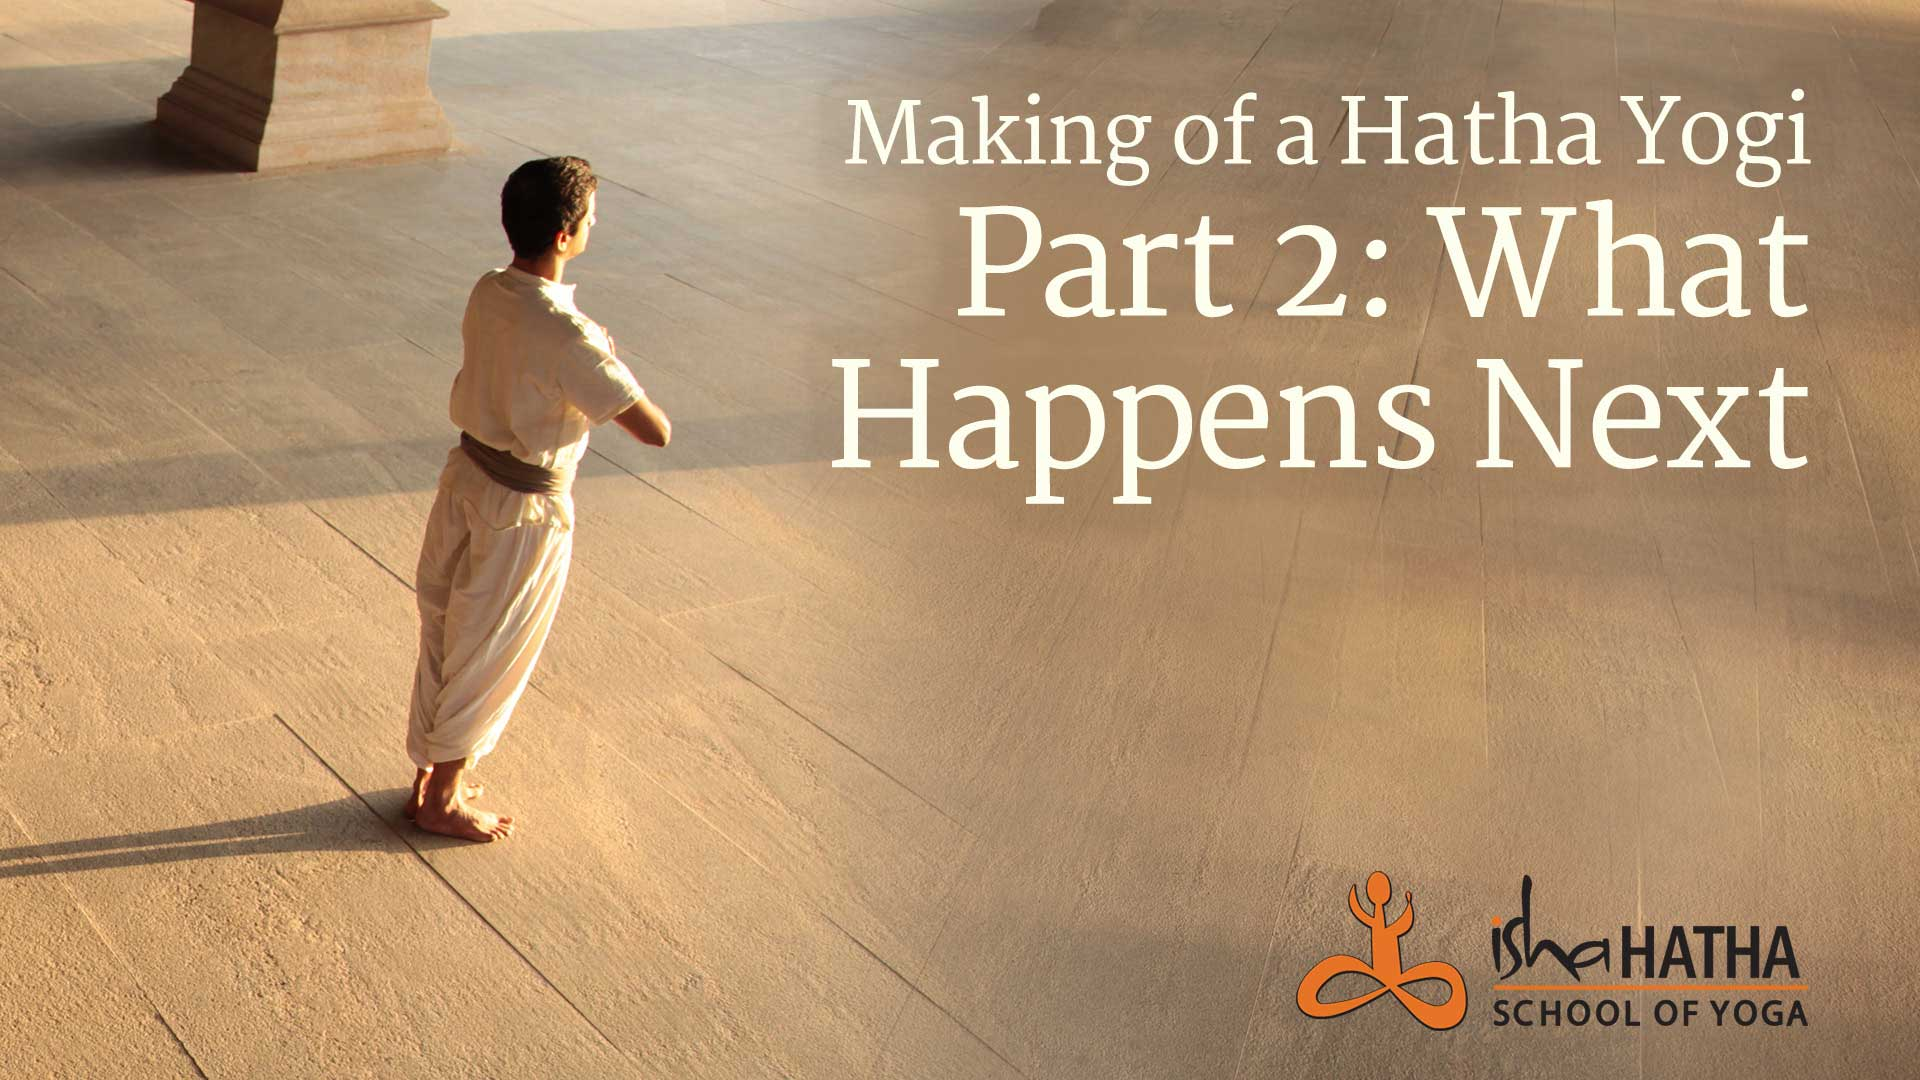 Making of a Hatha Yogi Part 2: What Happens Next